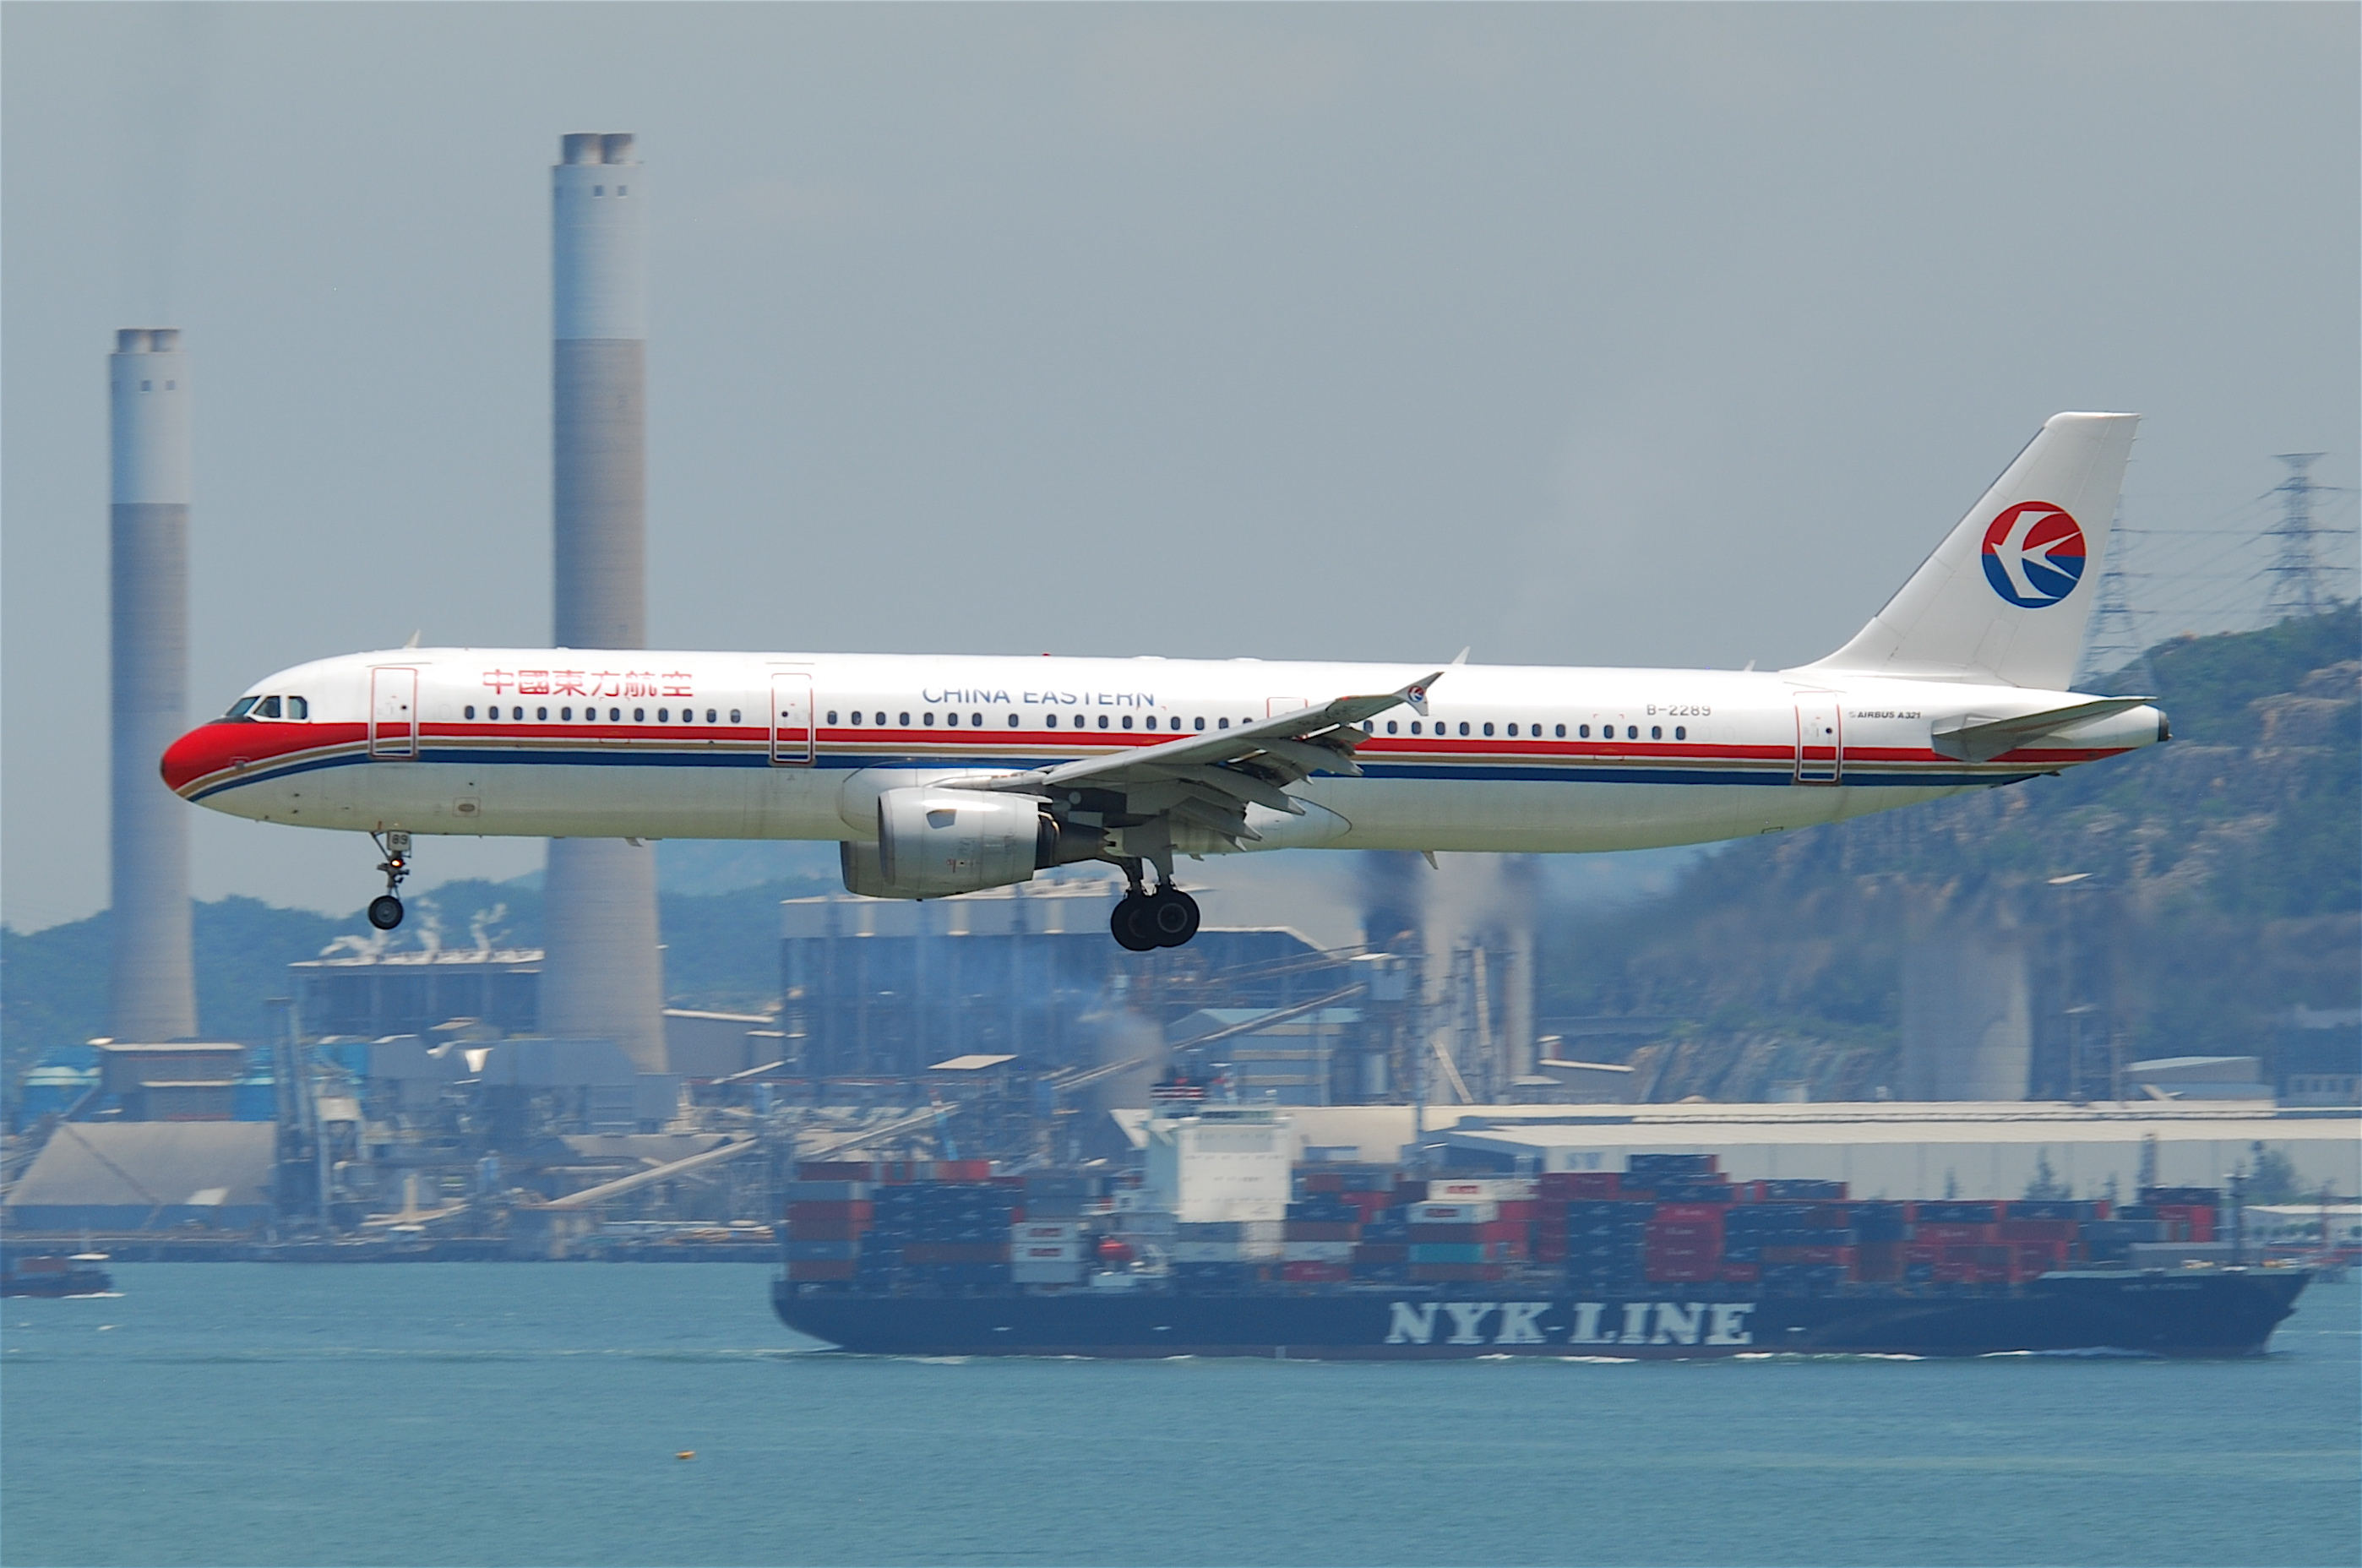 File:China Eastern Airlines Airbus A321-211; [email protected];